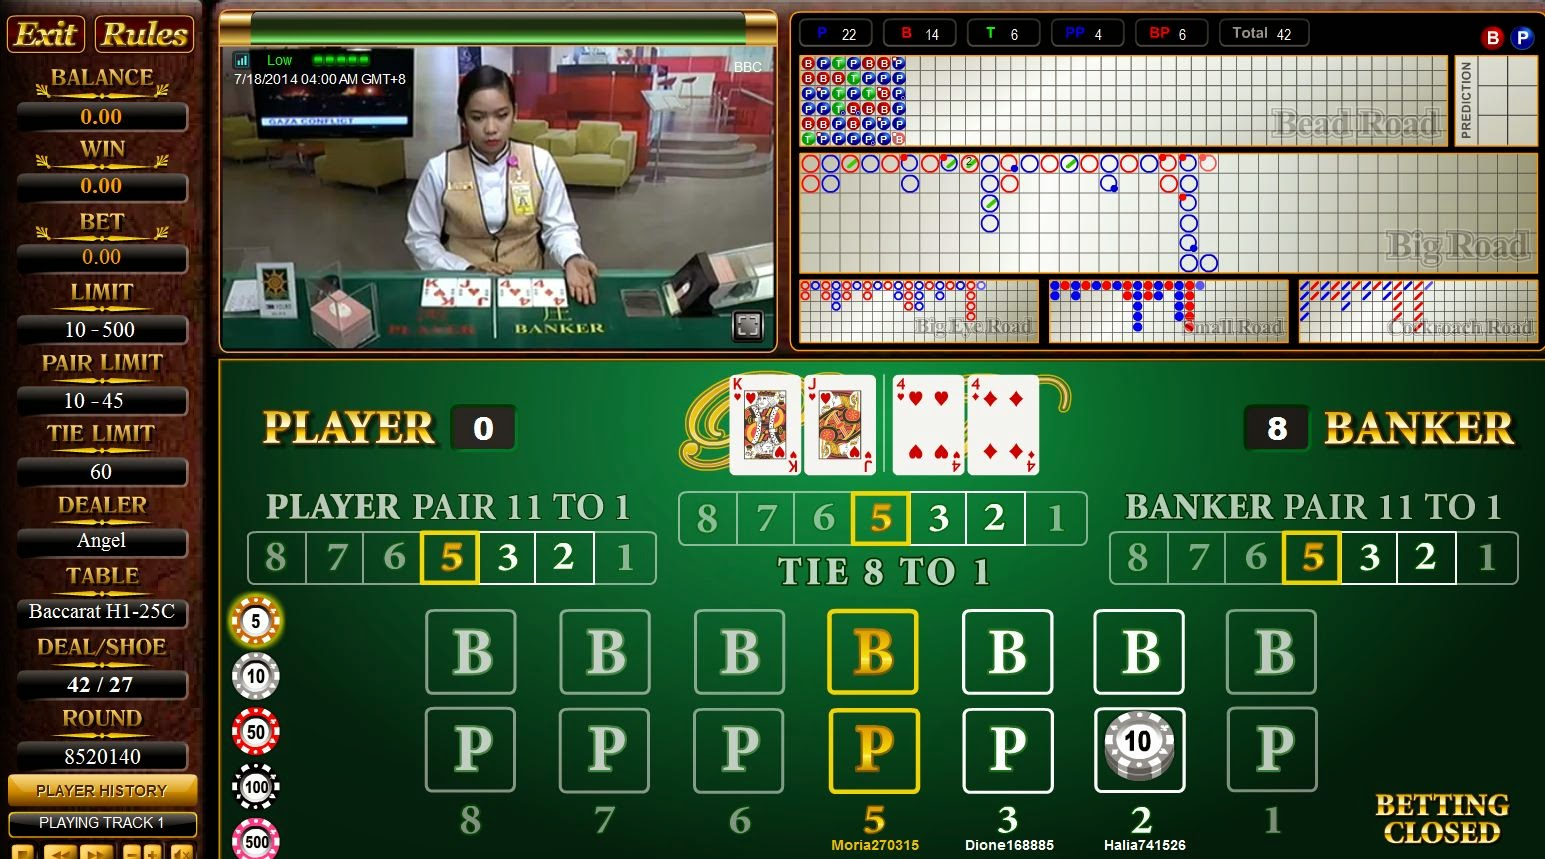 player-banker-tie-pair-sbobet-casino